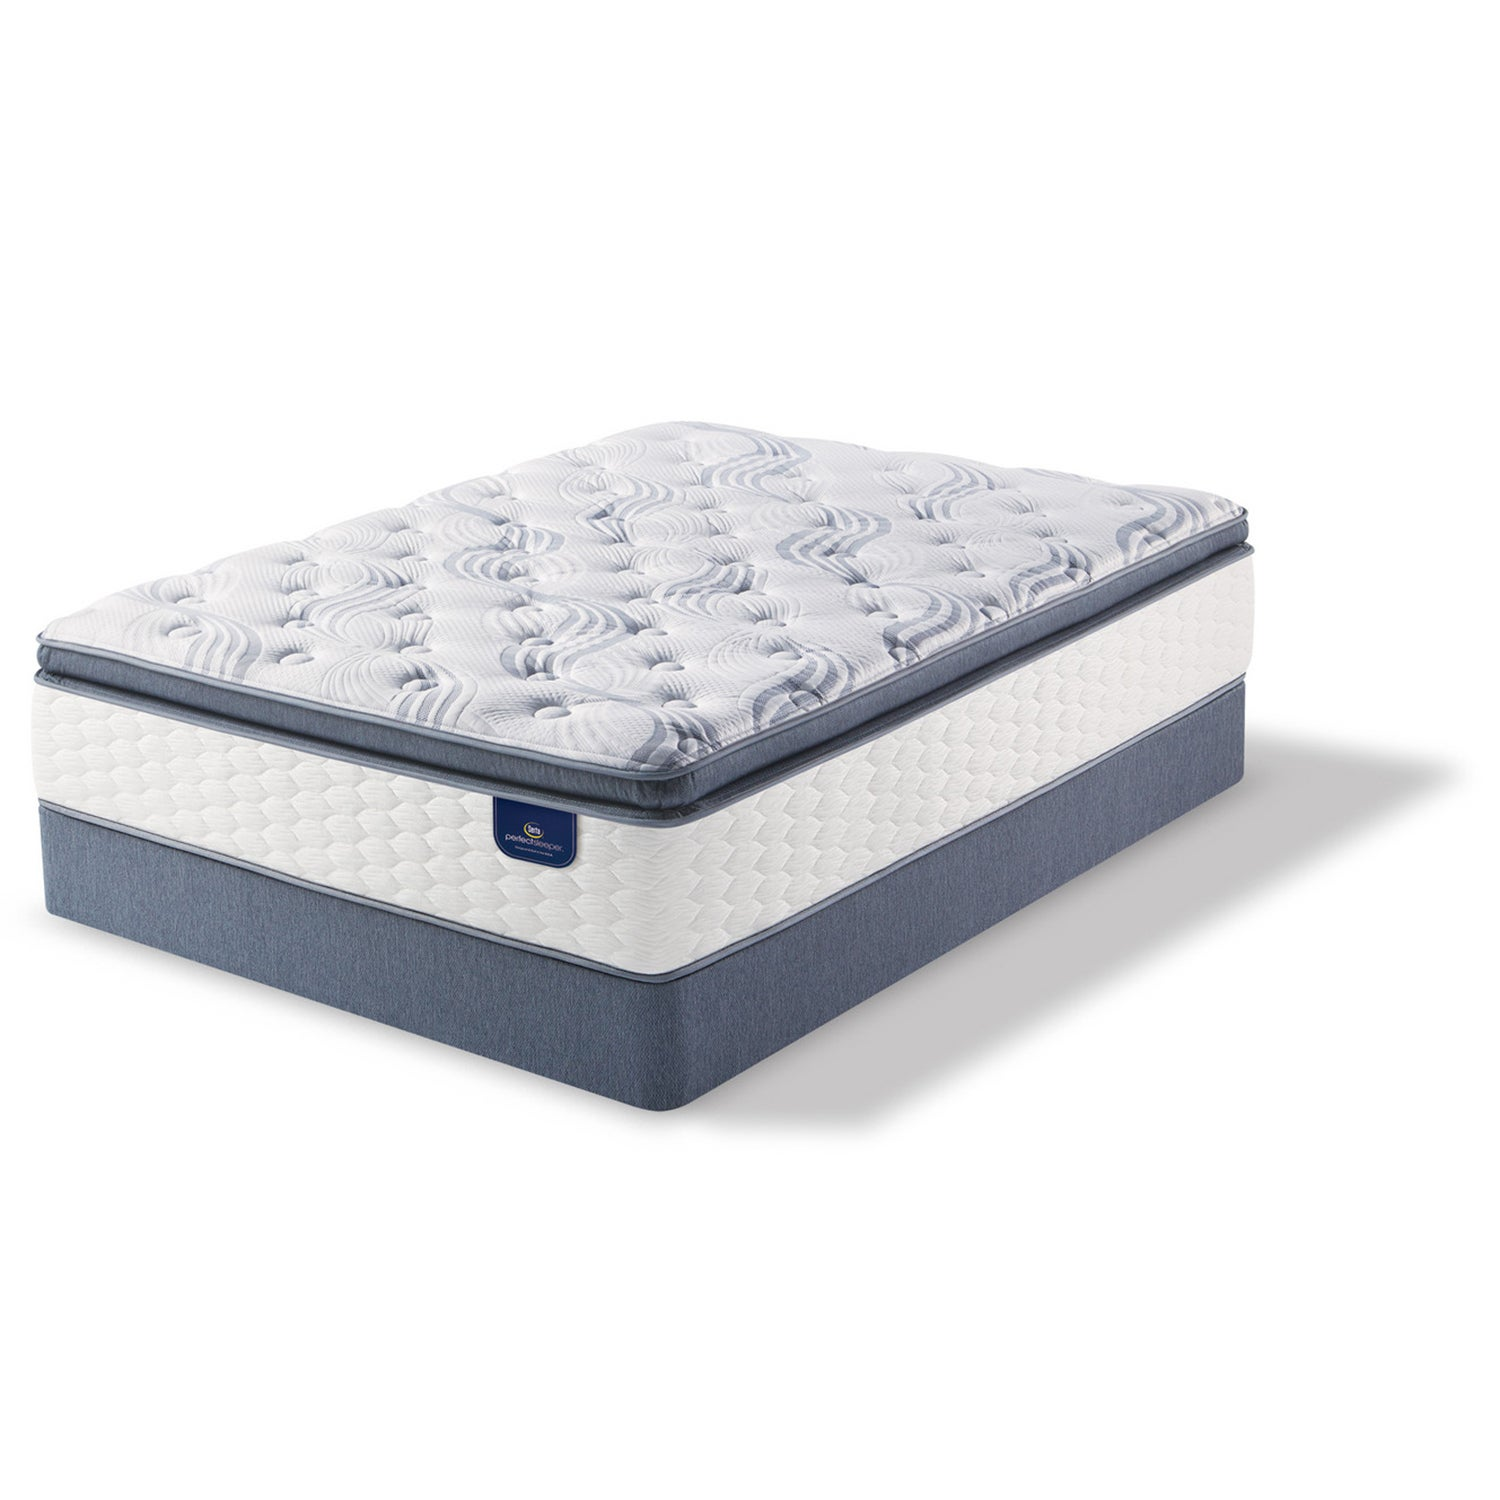 restorative pillow on rediscover sleeper perfect co topper nongzi queen pillowtop sleep top mattress glenellen serta the p